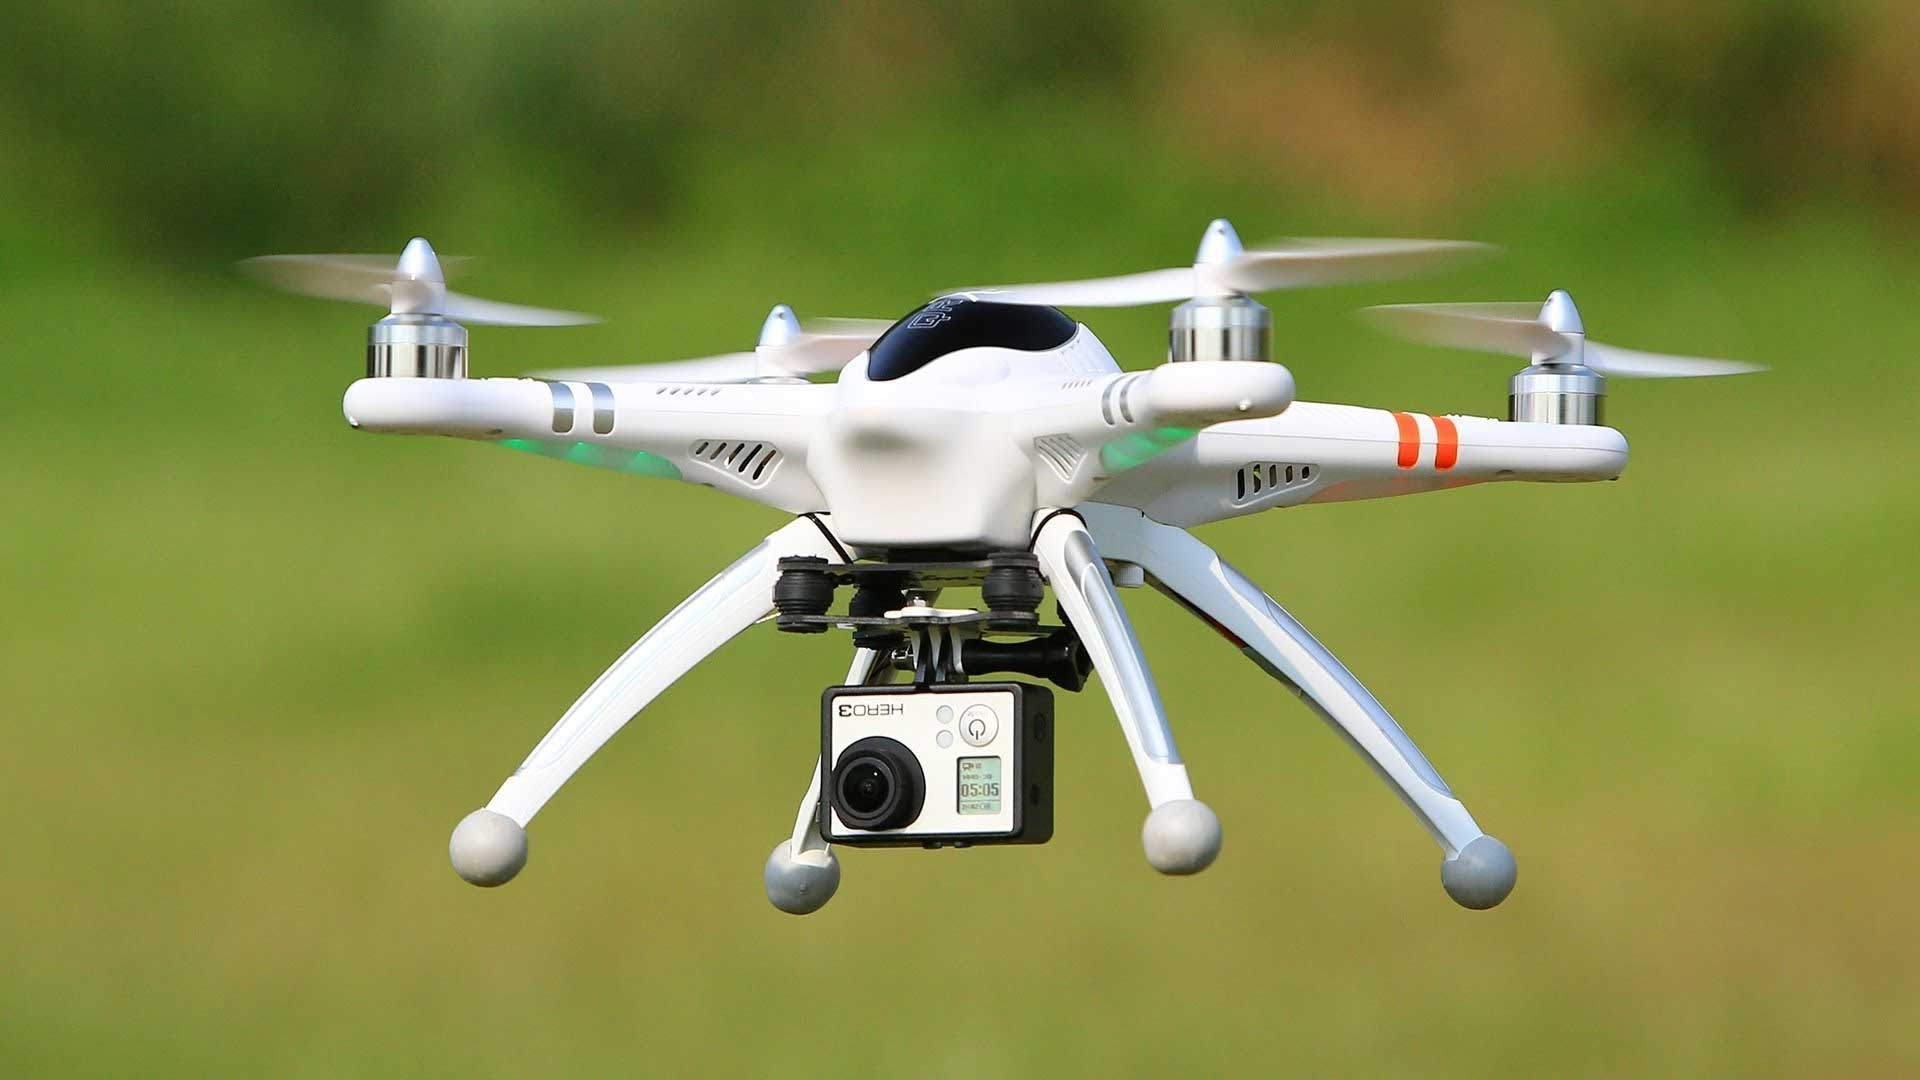 Image result for IMAGES DRONES